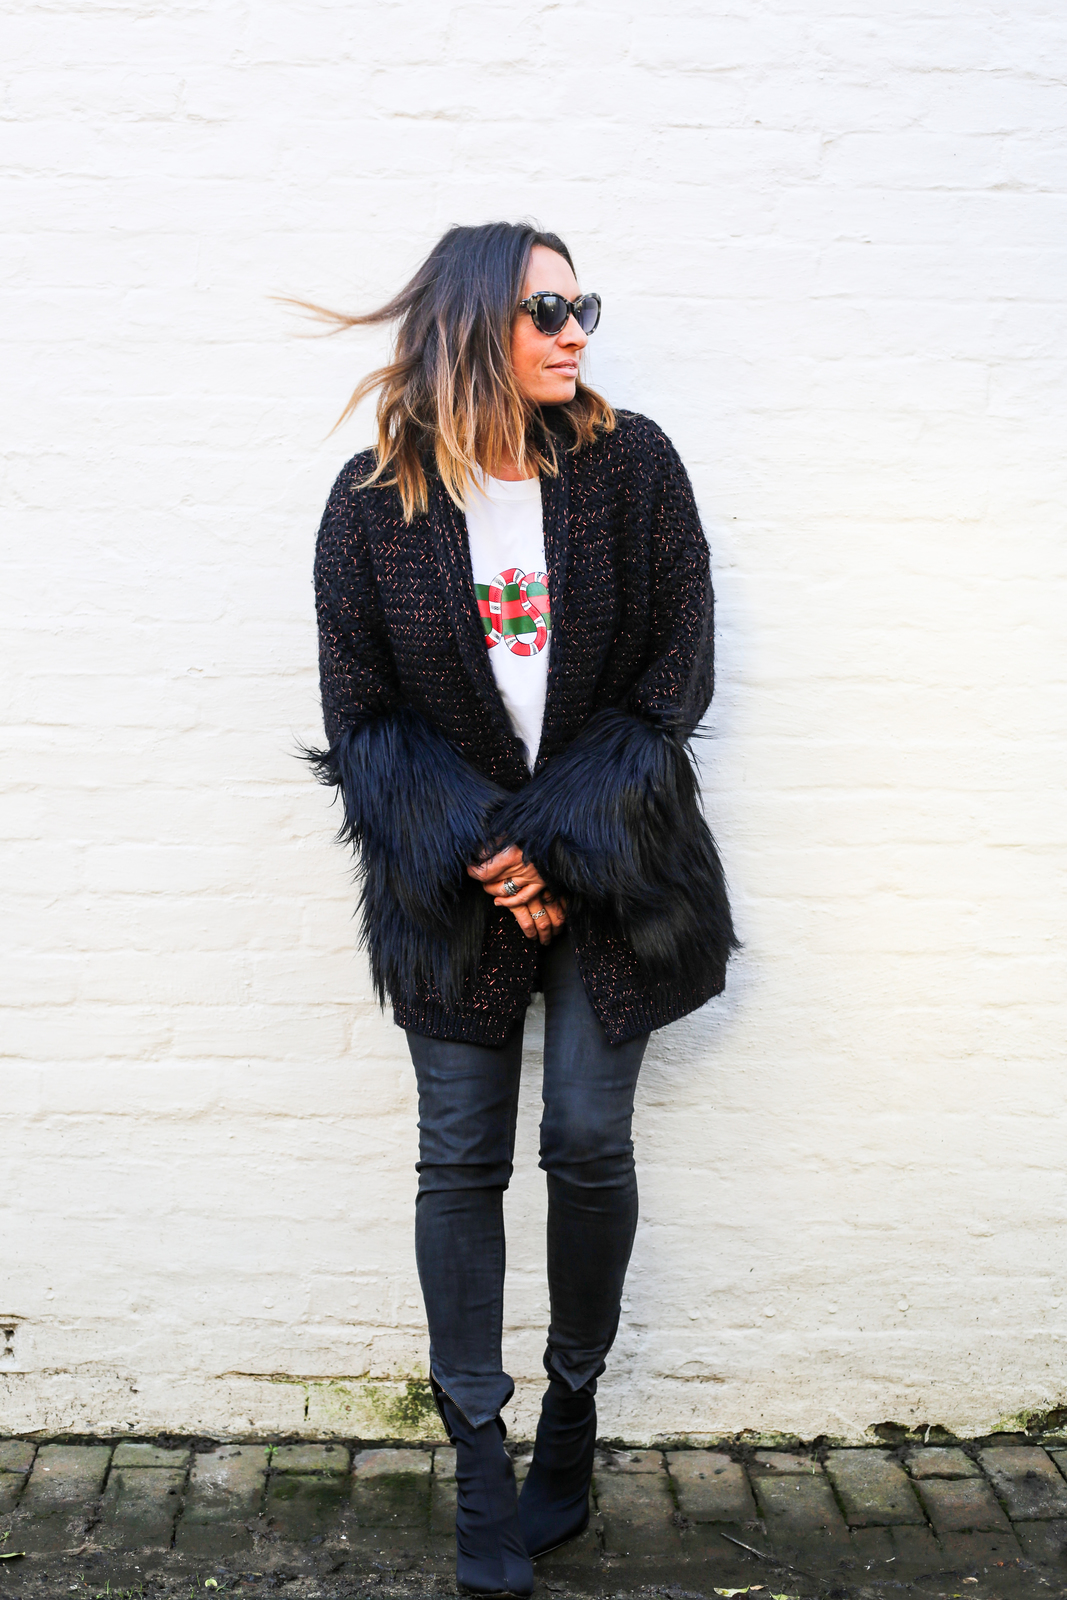 Claire Elizabeth wearing black faux fur trimmed coatigan black leather trousers and Taylor Morris sunglasses while leaning back against a white wall